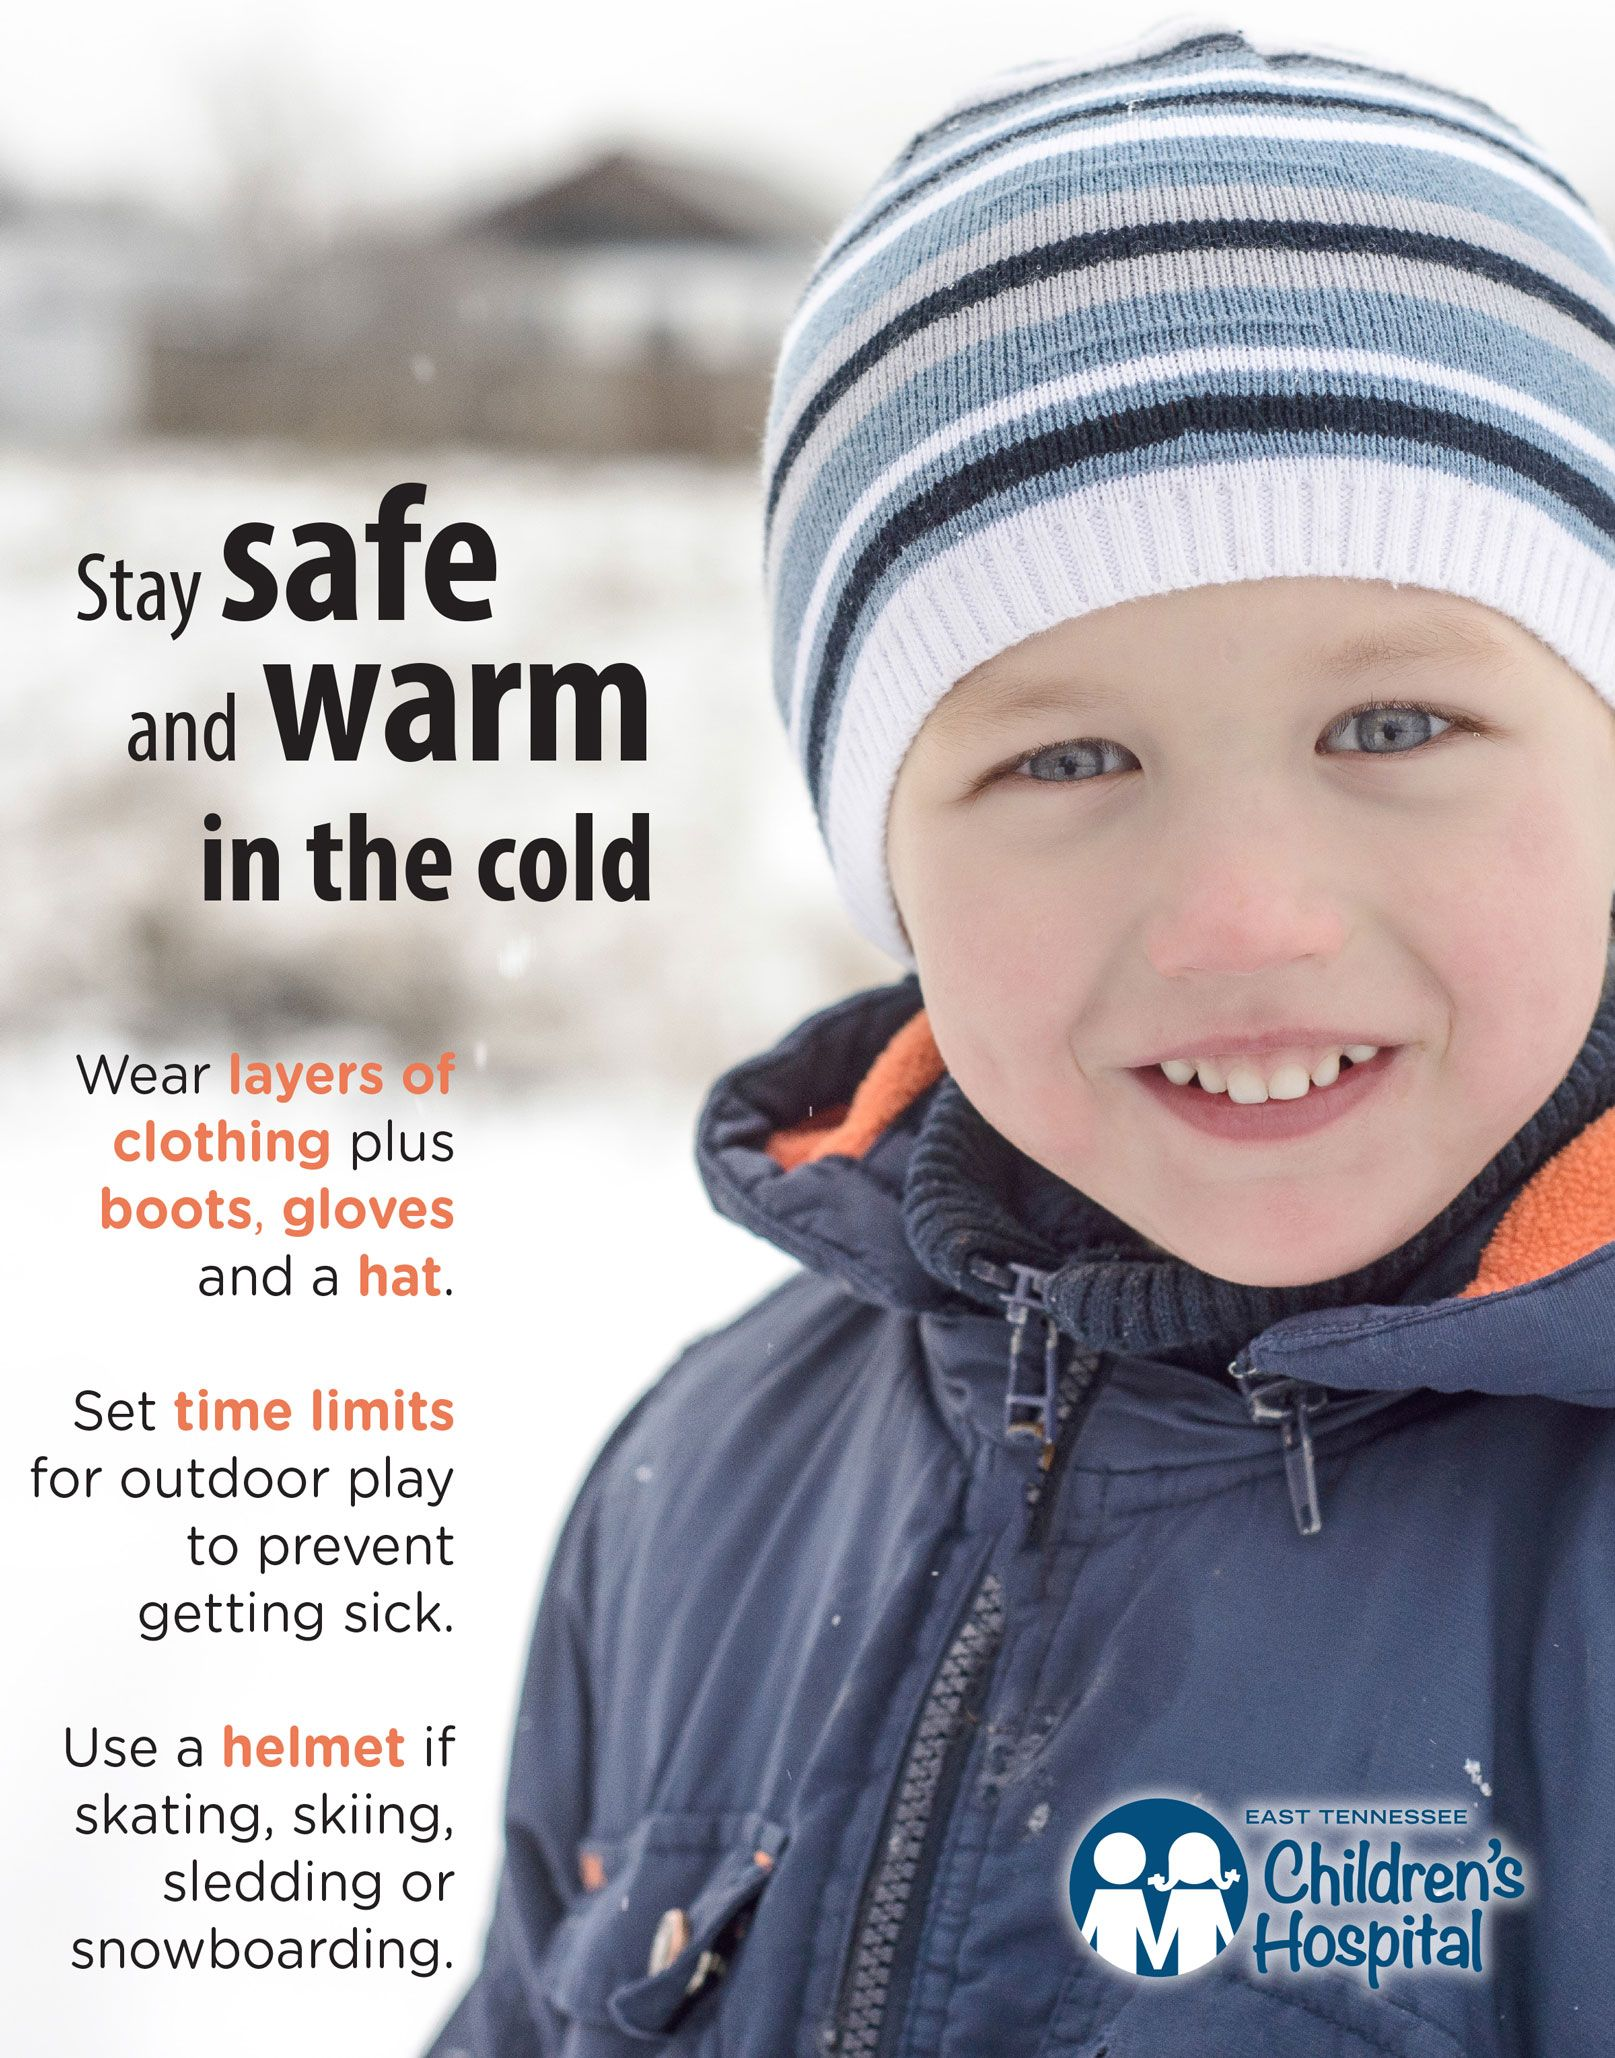 Stay safe and warm in the cold weather with these winter